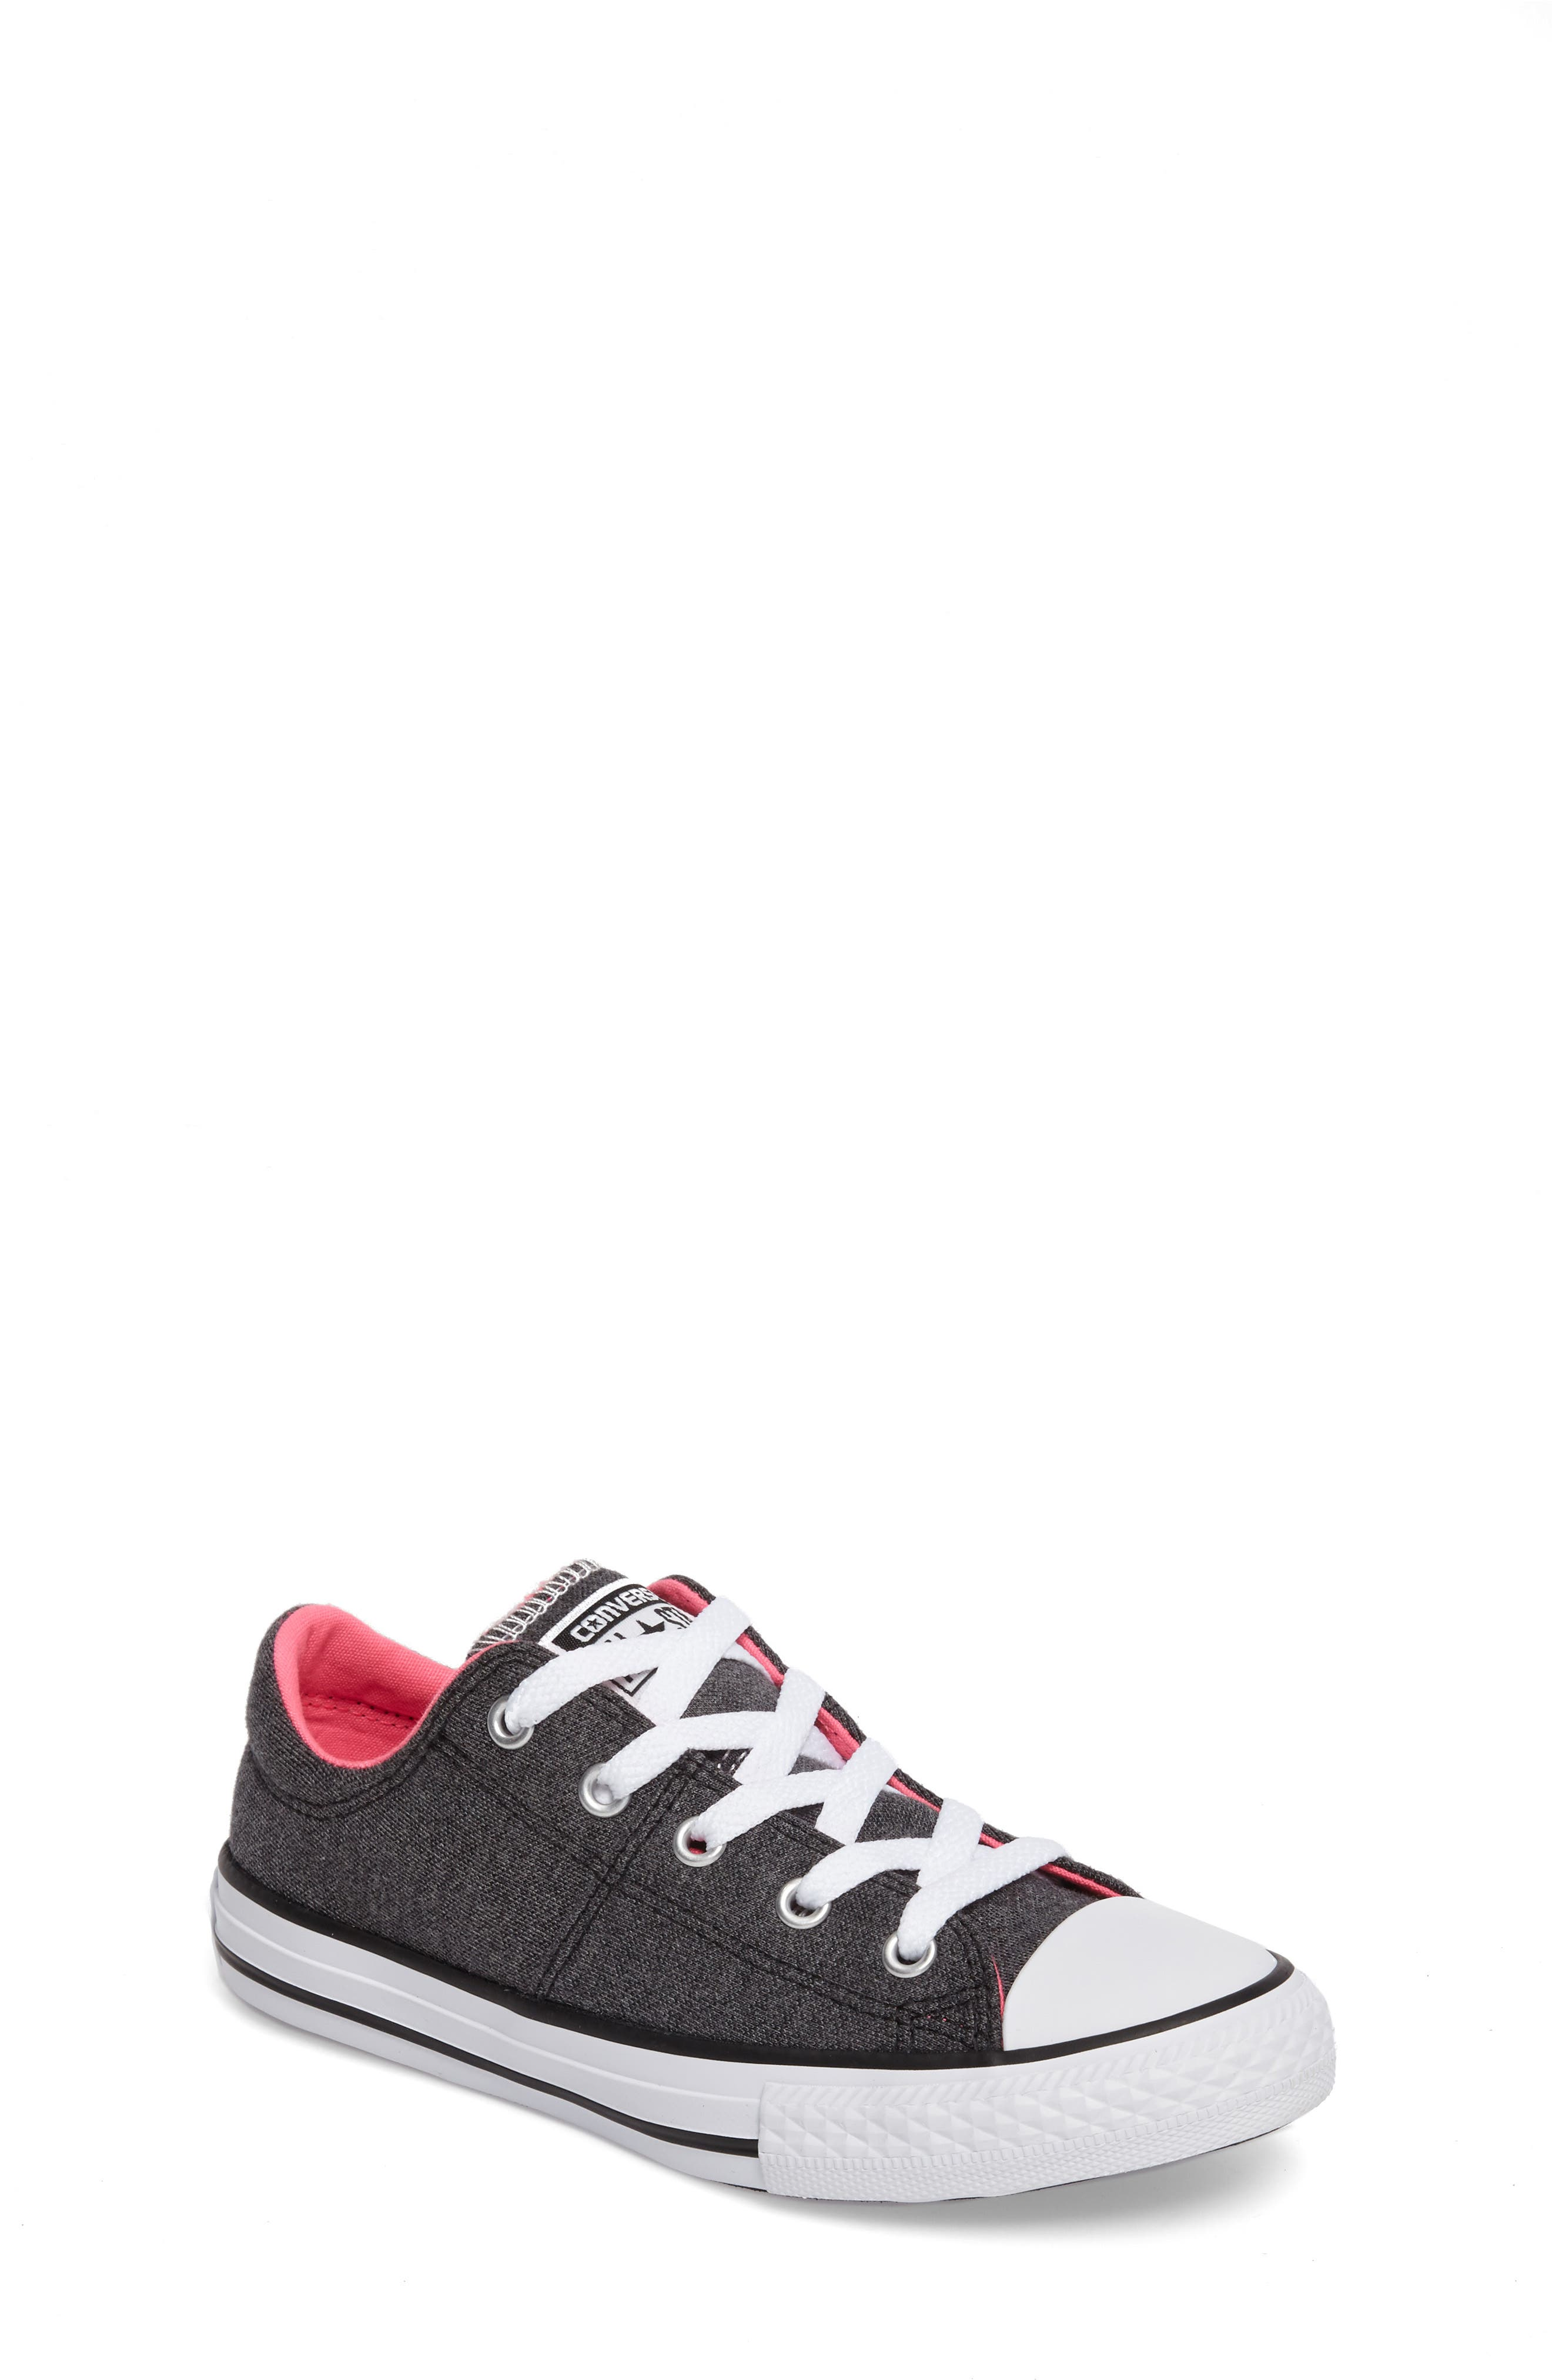 Chuck Taylor<sup>®</sup> All Star<sup>®</sup> Madison Low Top Sneaker,                             Main thumbnail 1, color,